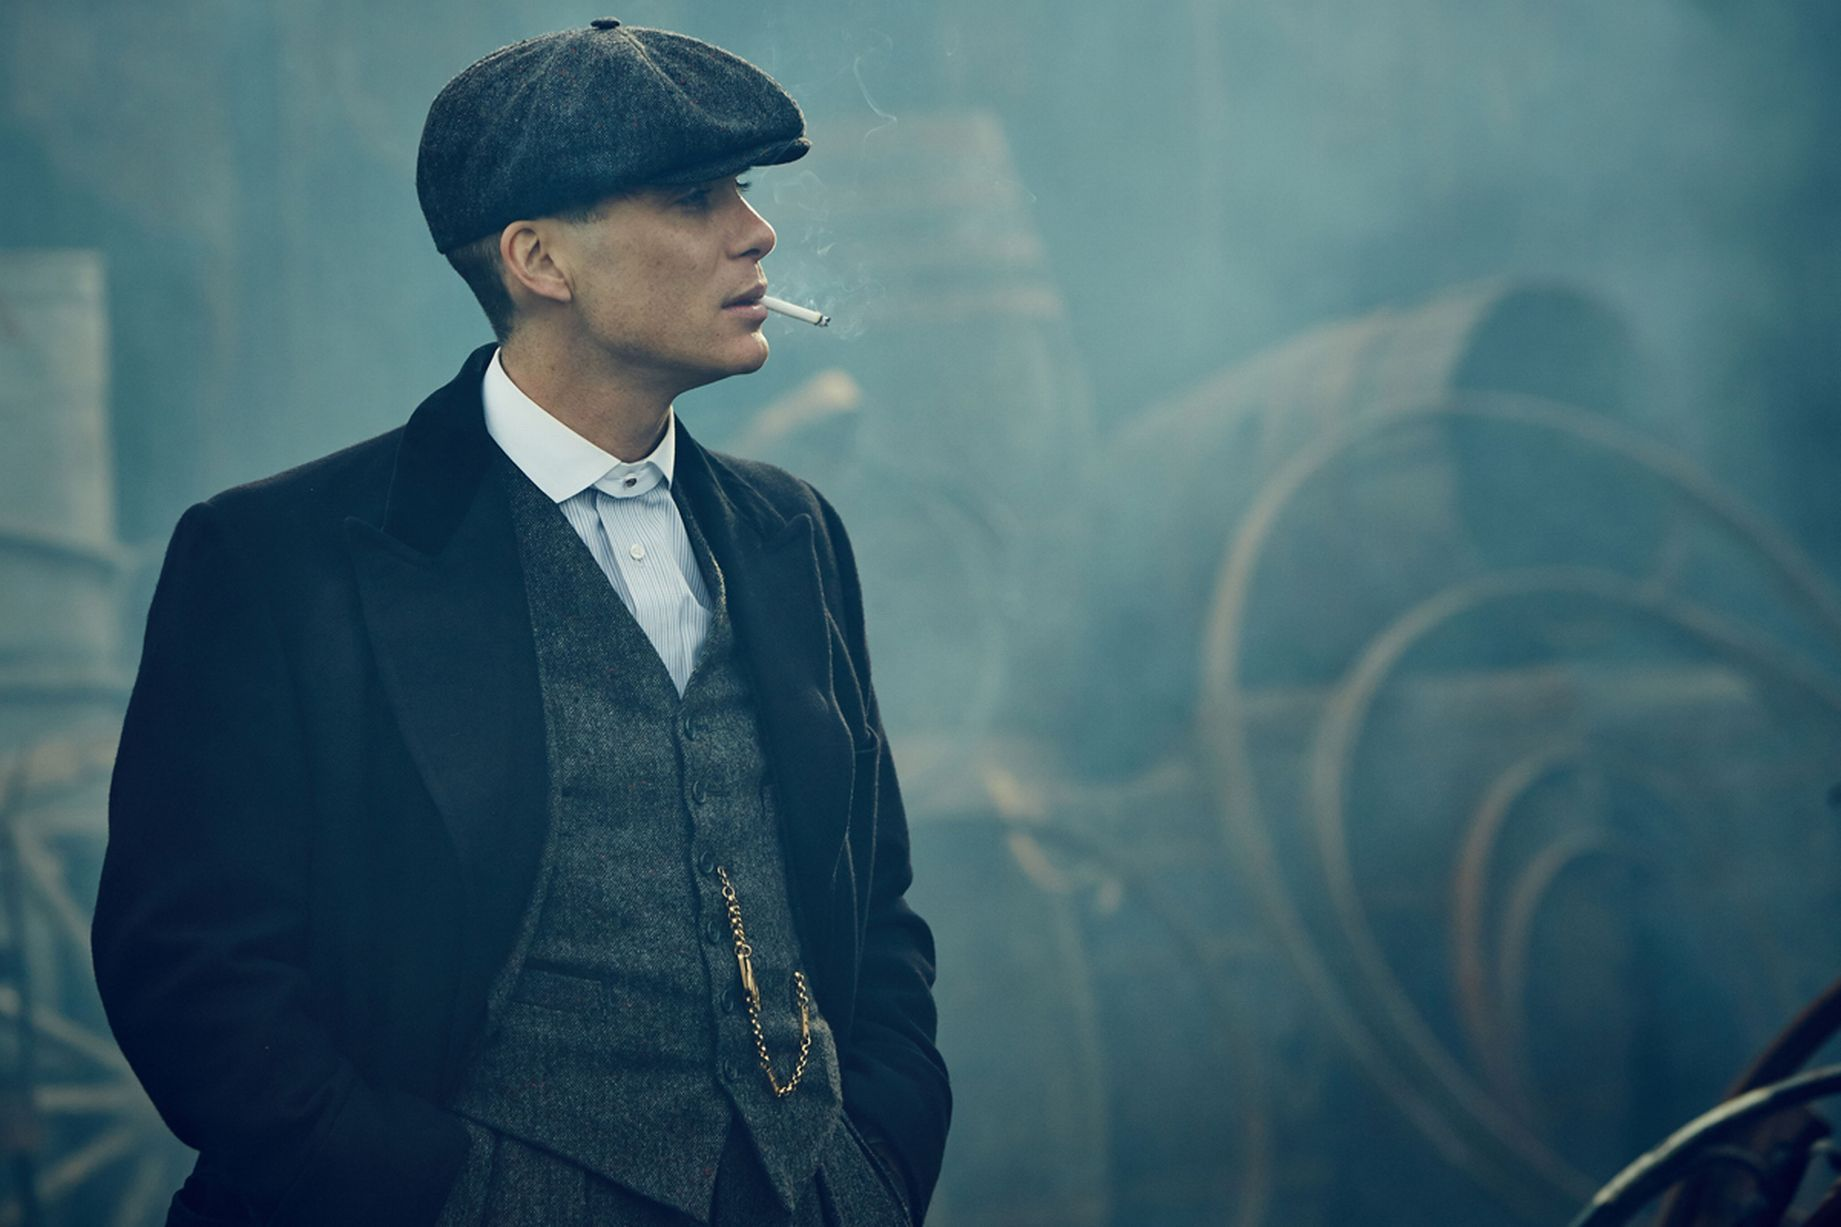 Cillian Murphy Didn't Really Get What 'Peaky Blinders' Meant When He First Heard It